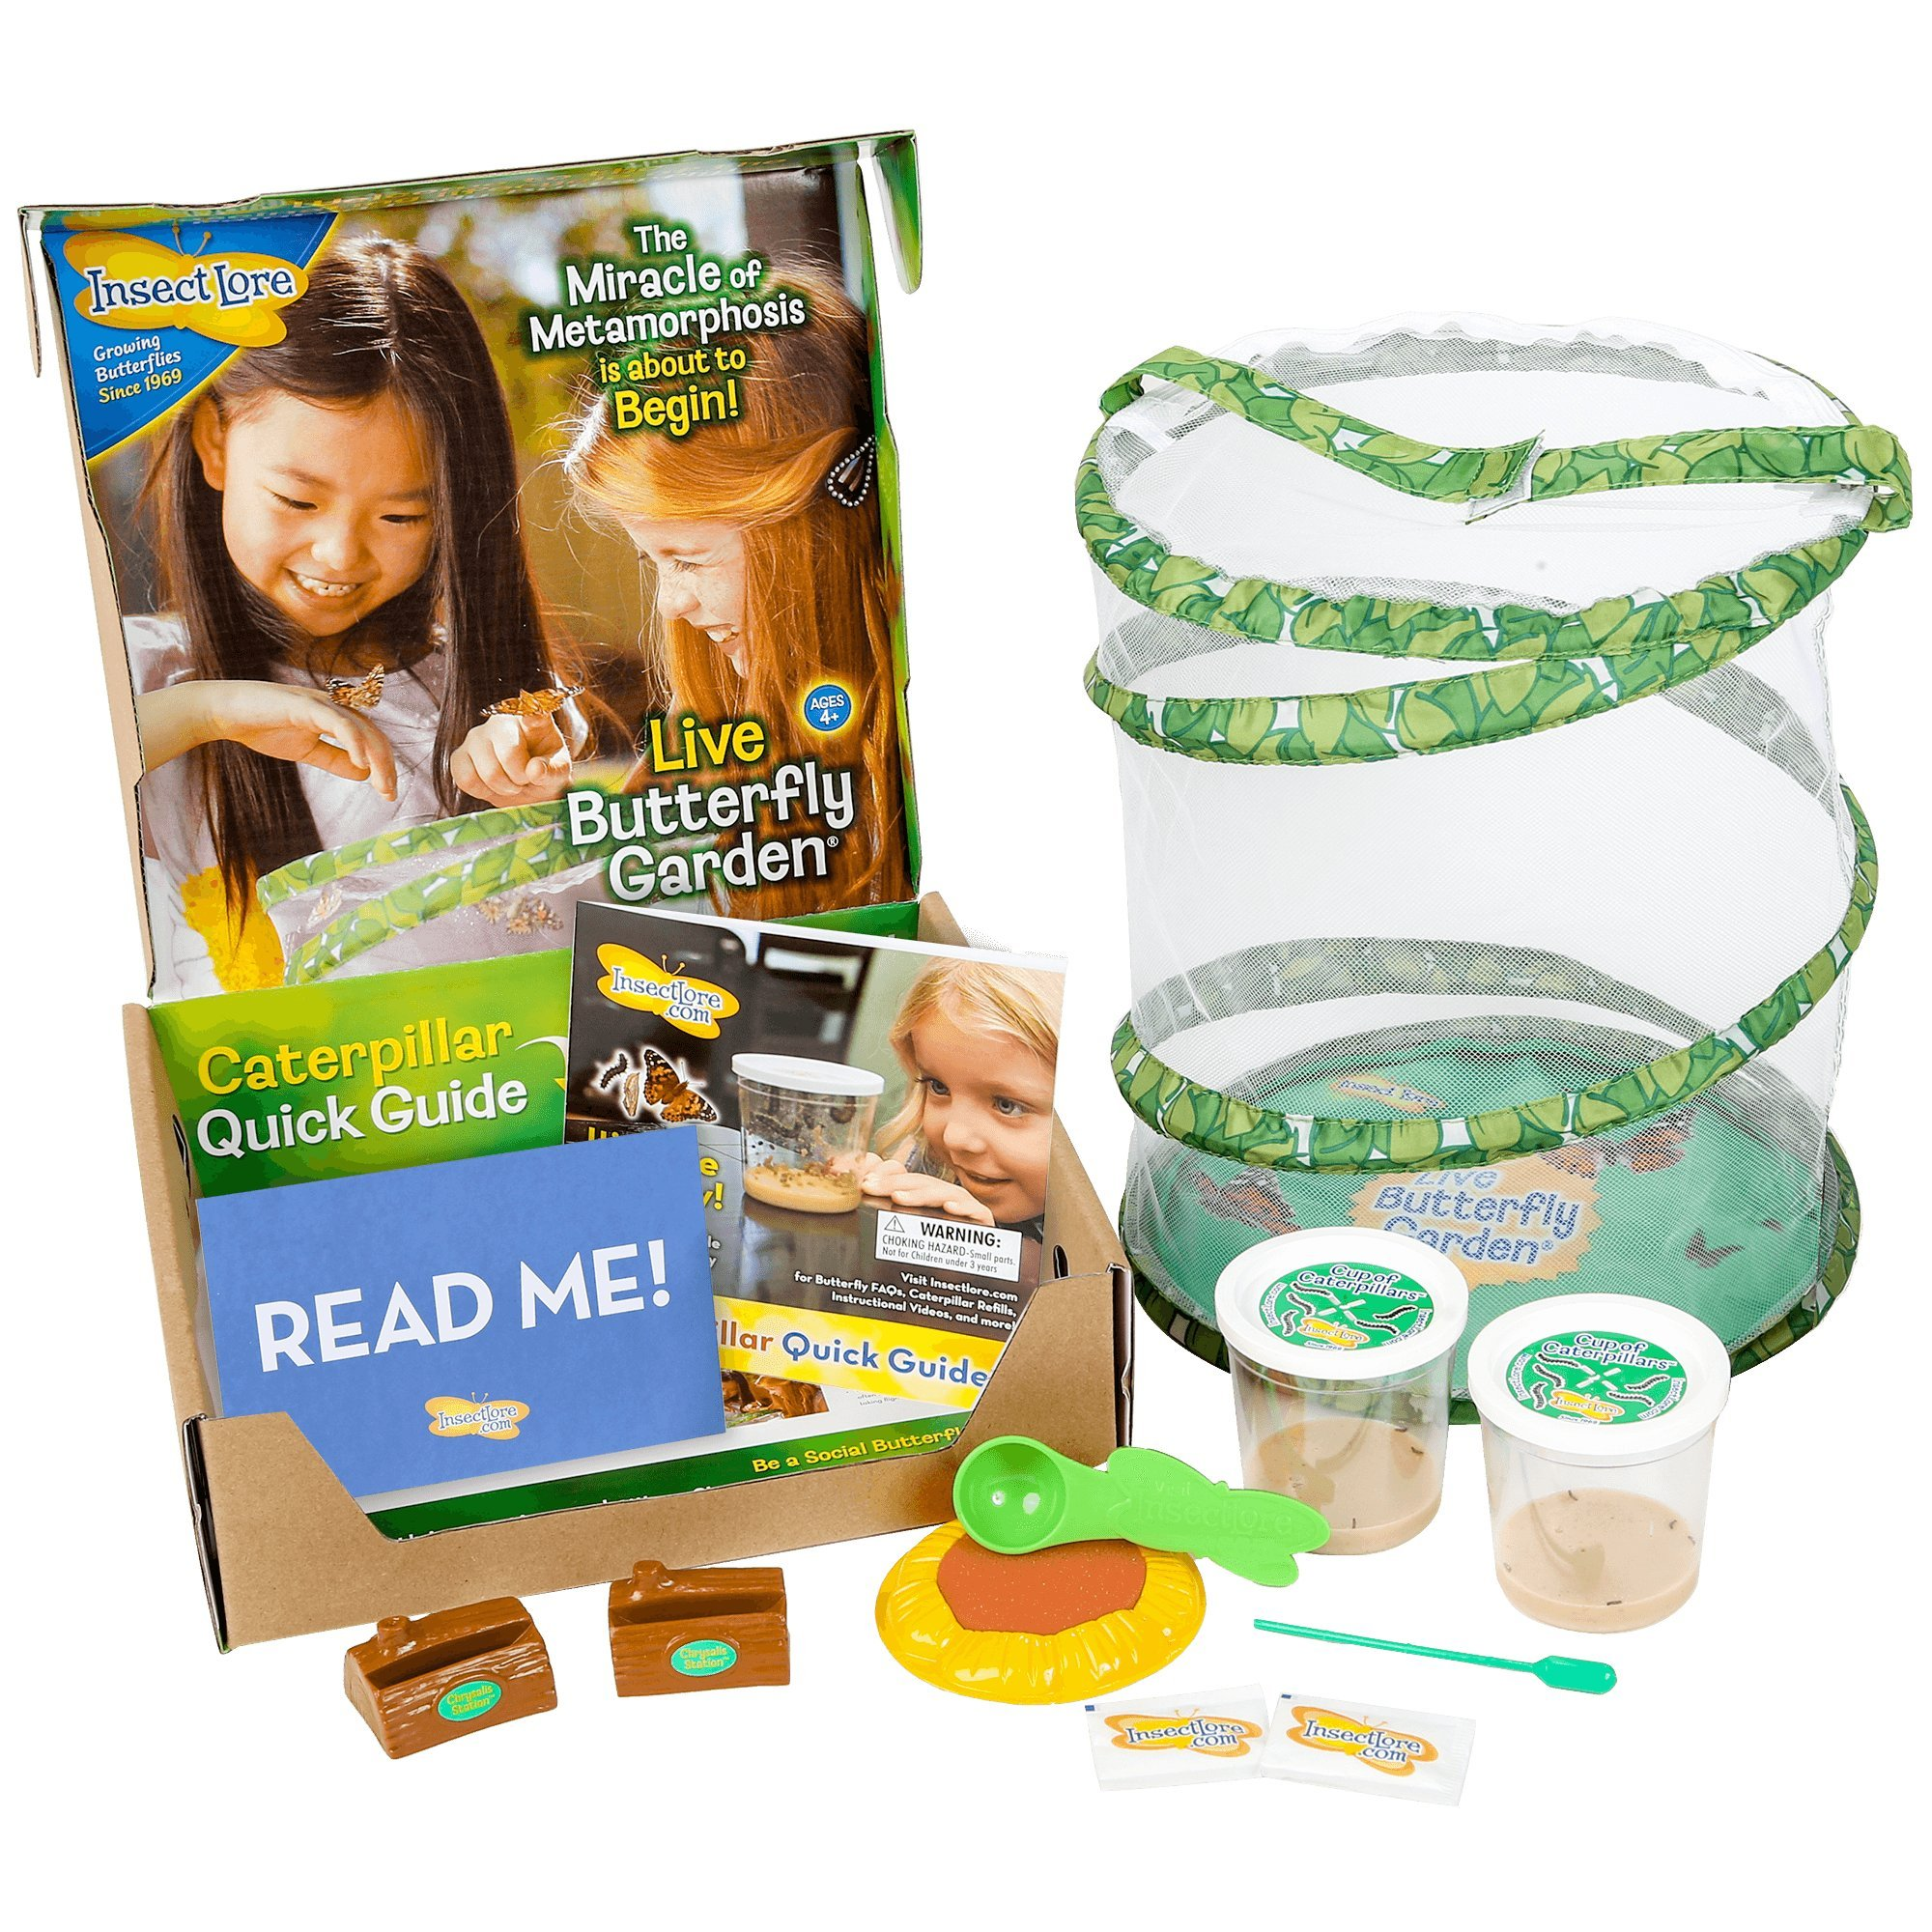 insect lore deluxe butterfly garden with 2 live cups of caterpillars and feeding habitat kit - Live Butterfly Garden